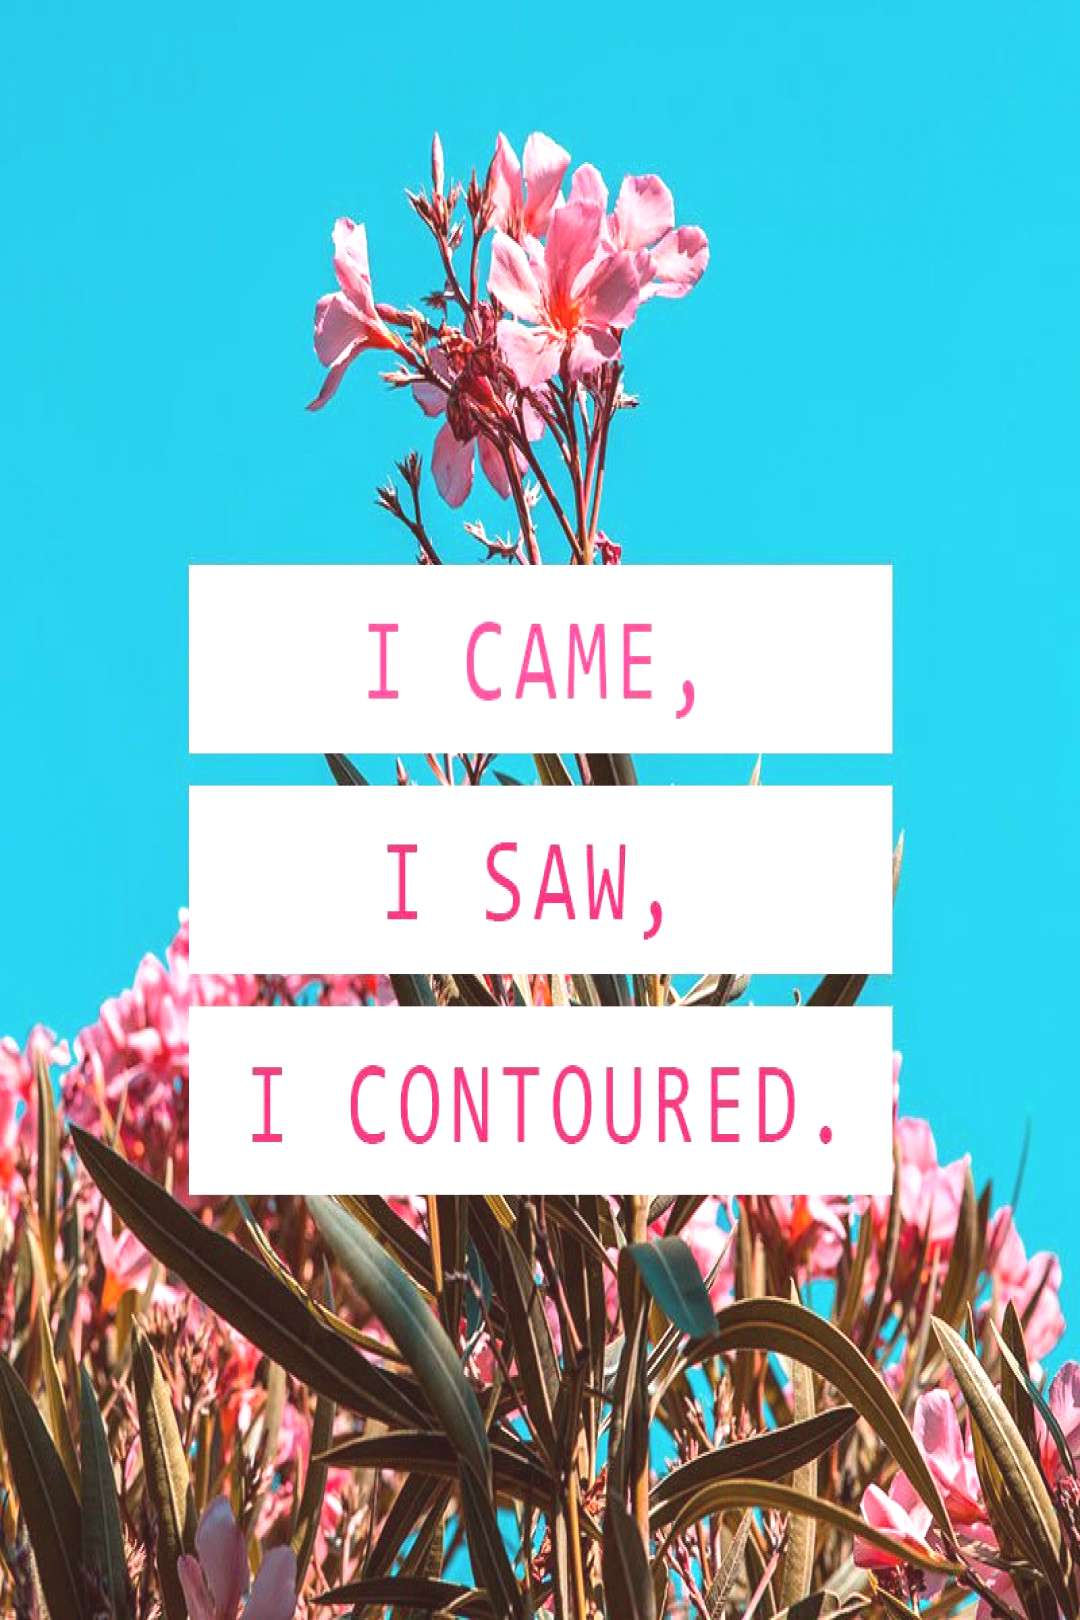 Do you love to contour? Love the confidence it gives you? ?